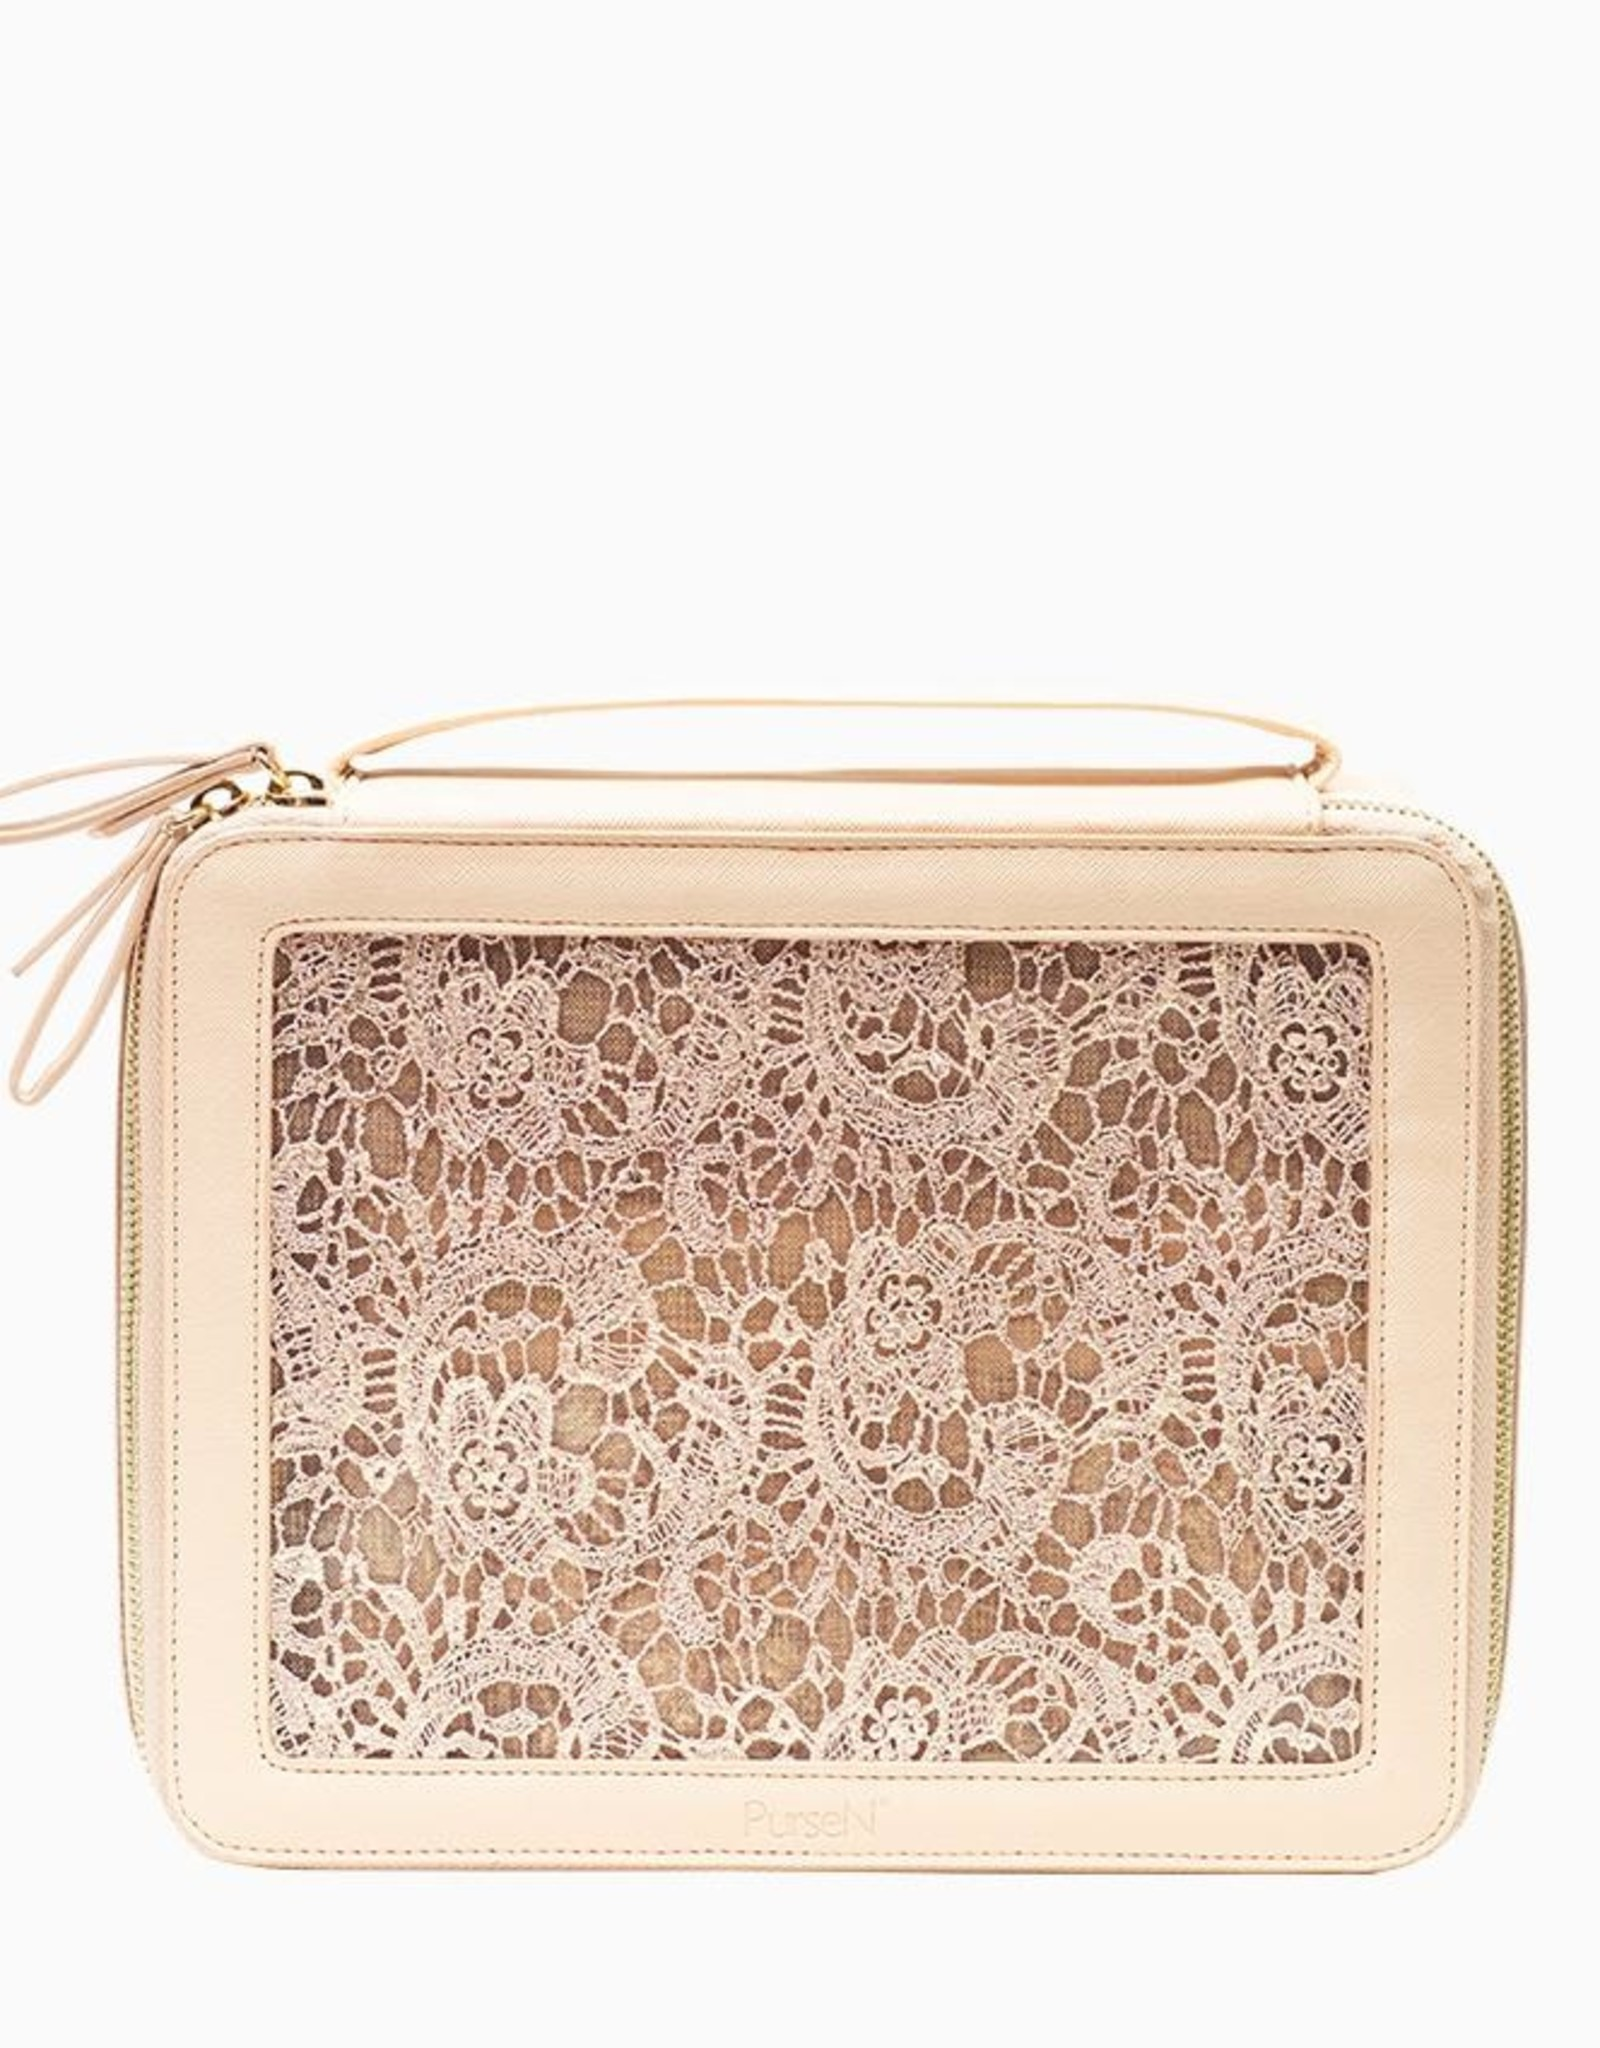 purseN Ava Travel Case - Blush Lace